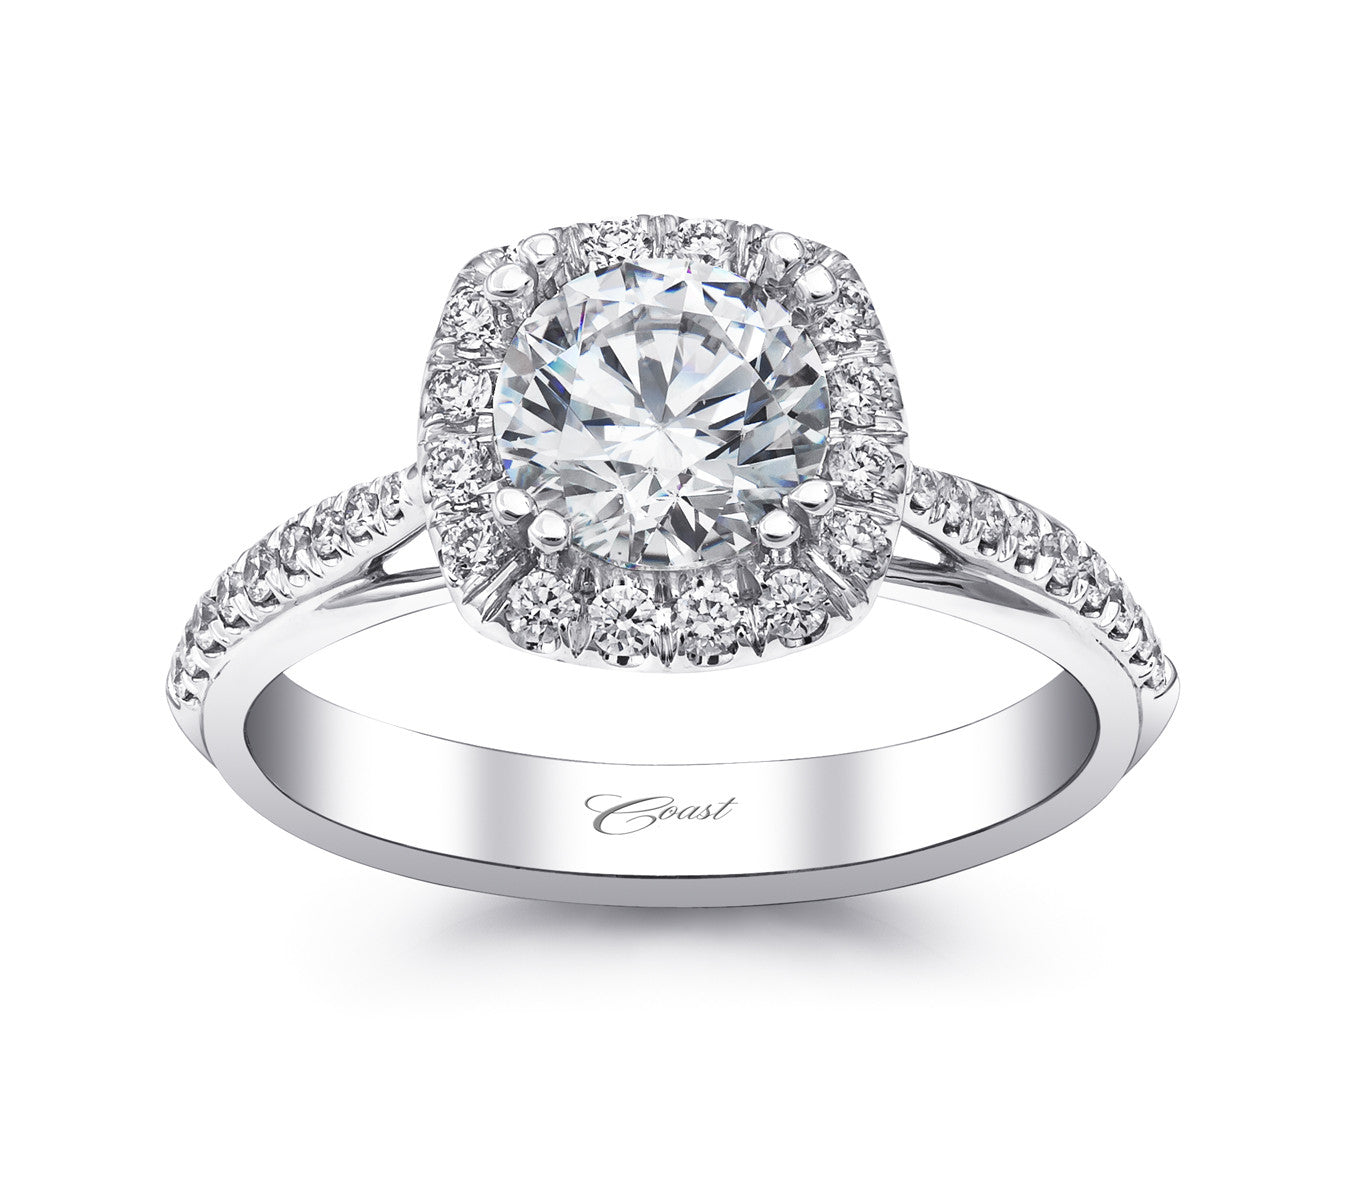 Coast Diamond Engagement Ring LC5356